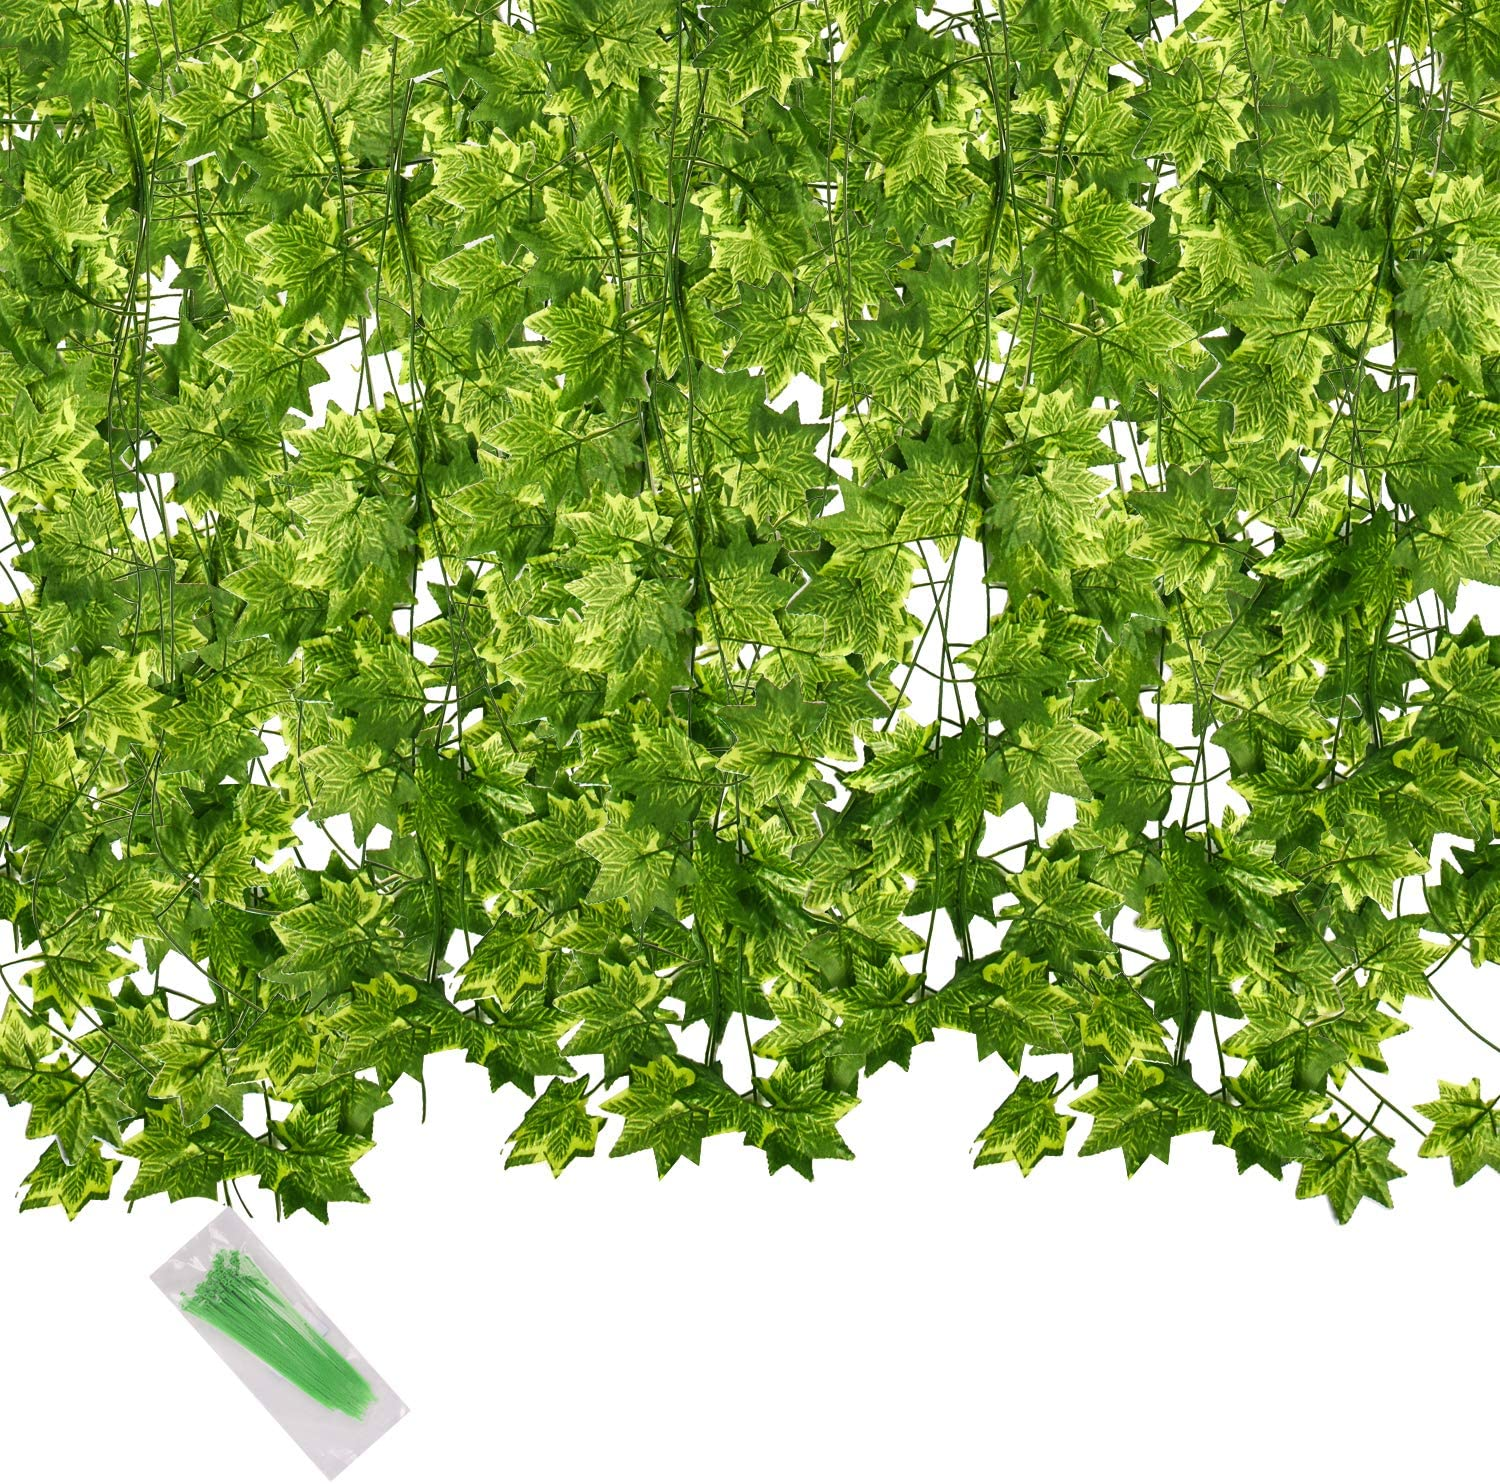 Artificial Green Maple Leaf, 78.7Ft 12 Pack Hanging Vines Garland Fake Maple Leaves Plants Fake Foliage Flowers Fake Greenery Decor for Home Kitchen Garden Office Wedding Wall Party Decoration